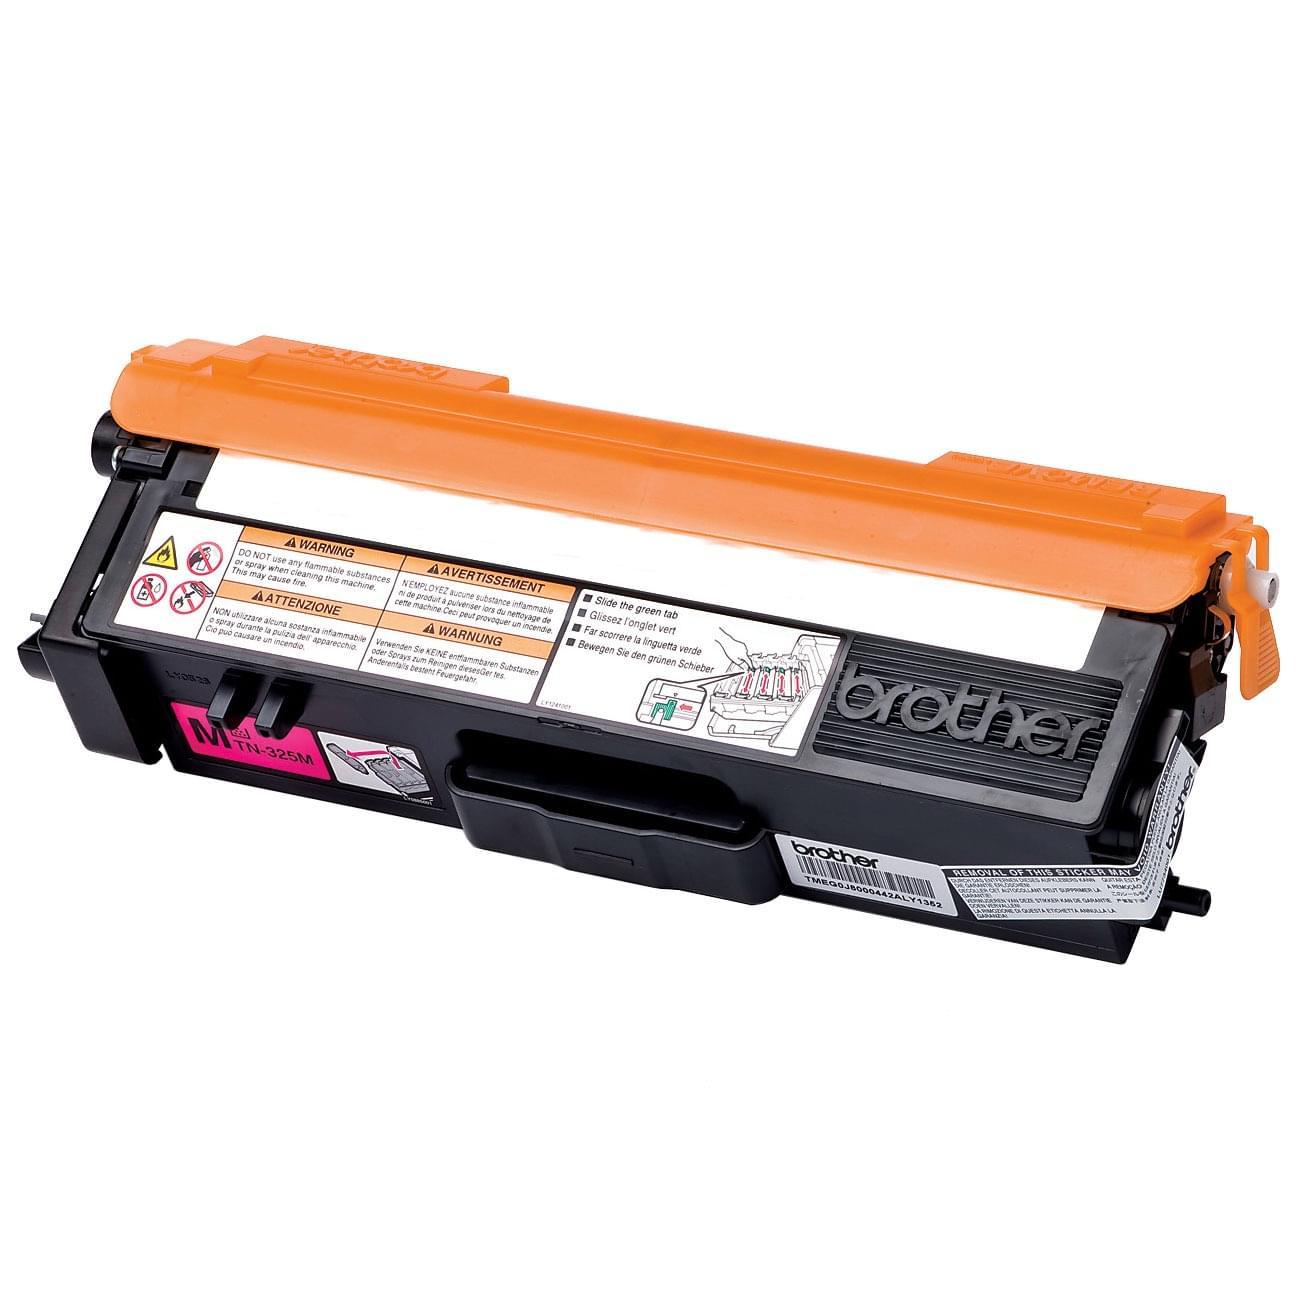 Toner TN320M Magenta - 1500p pour imprimante Laser Brother - 0